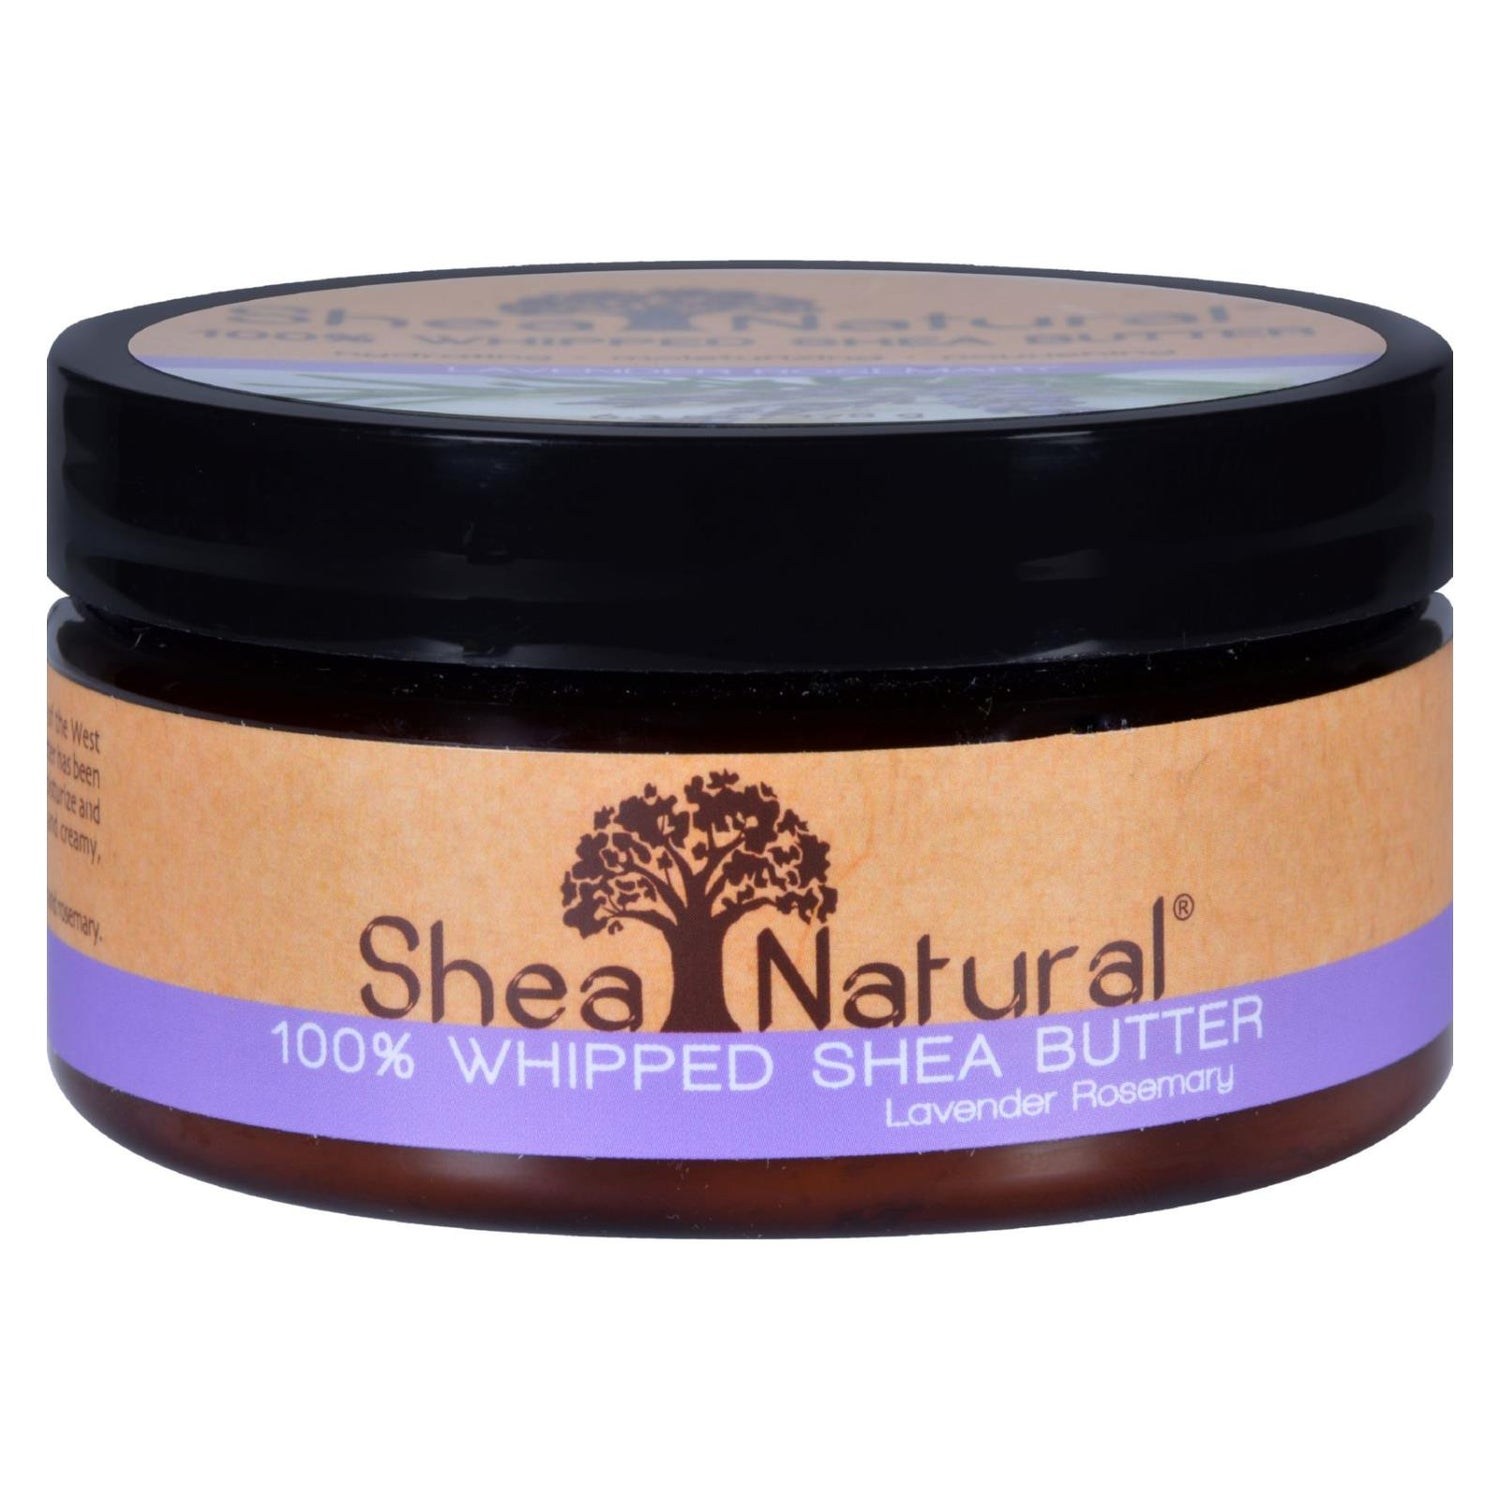 Shea Natural Whipped Shea Butter Lavender Rosemary - 6.3 Oz